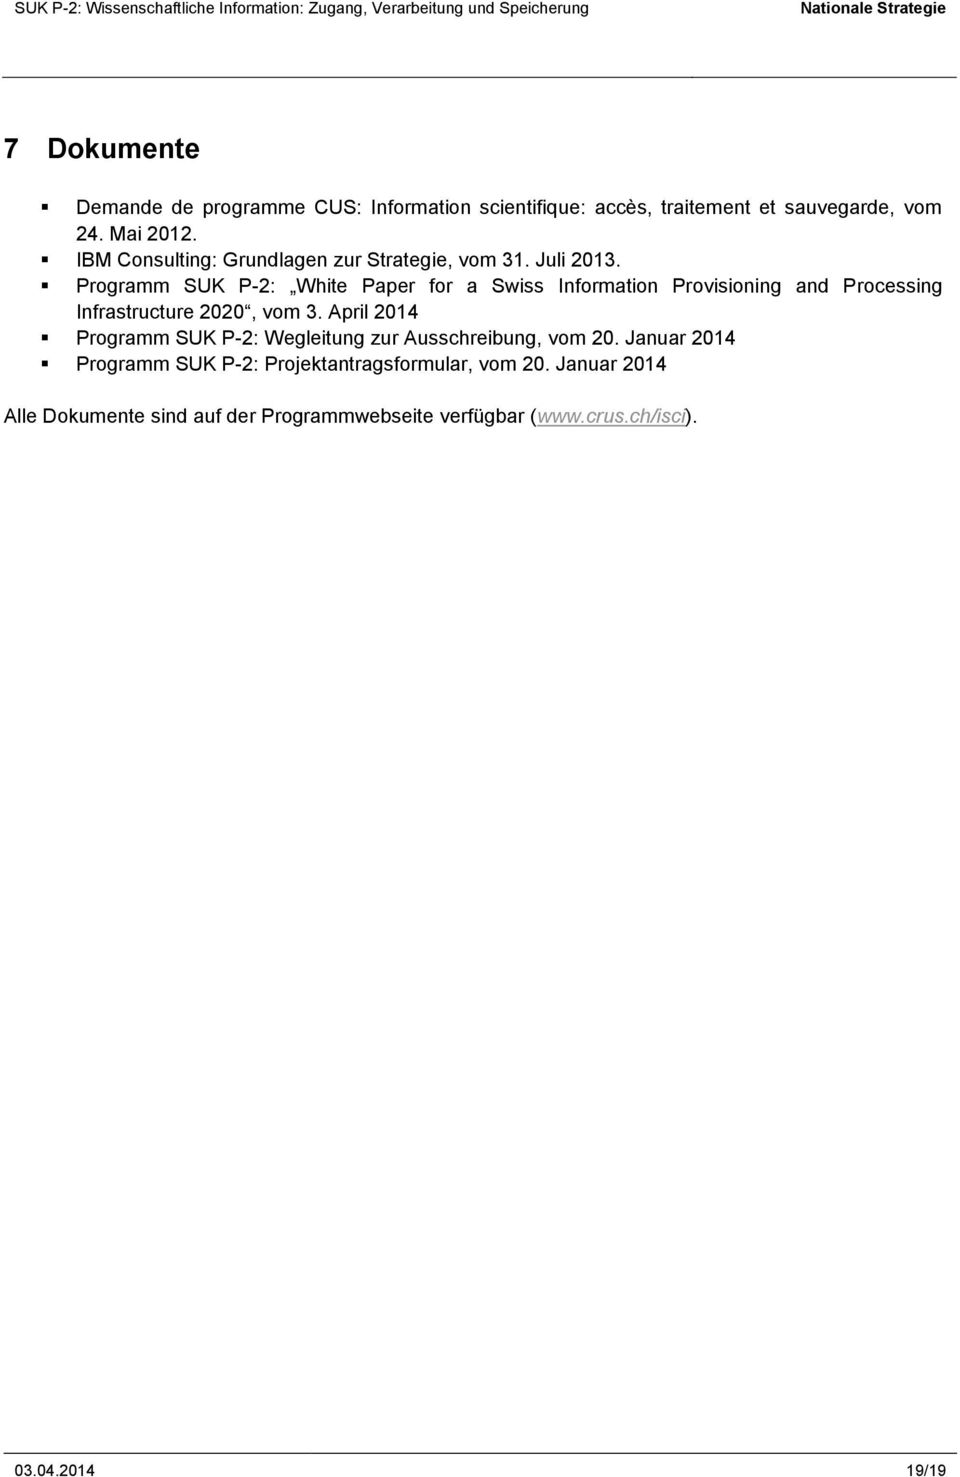 Programm SUK P-2: White Paper for a Swiss Information Provisioning and Processing Infrastructure 2020, vom 3.